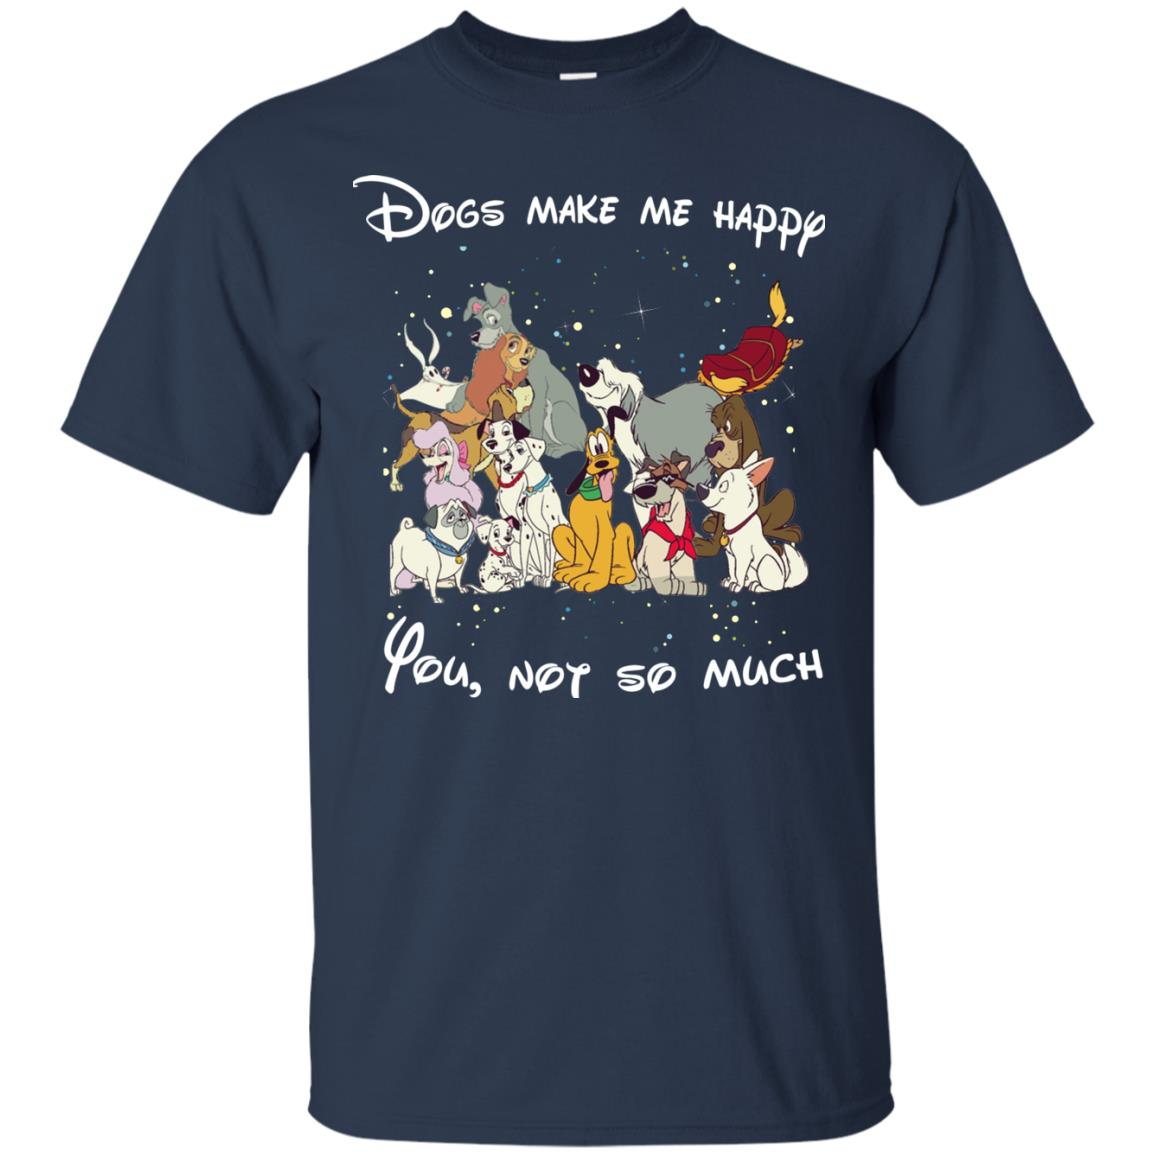 image 37px Disney dogs: Dogs make me happy you not so much t shirt, hoodies, tank